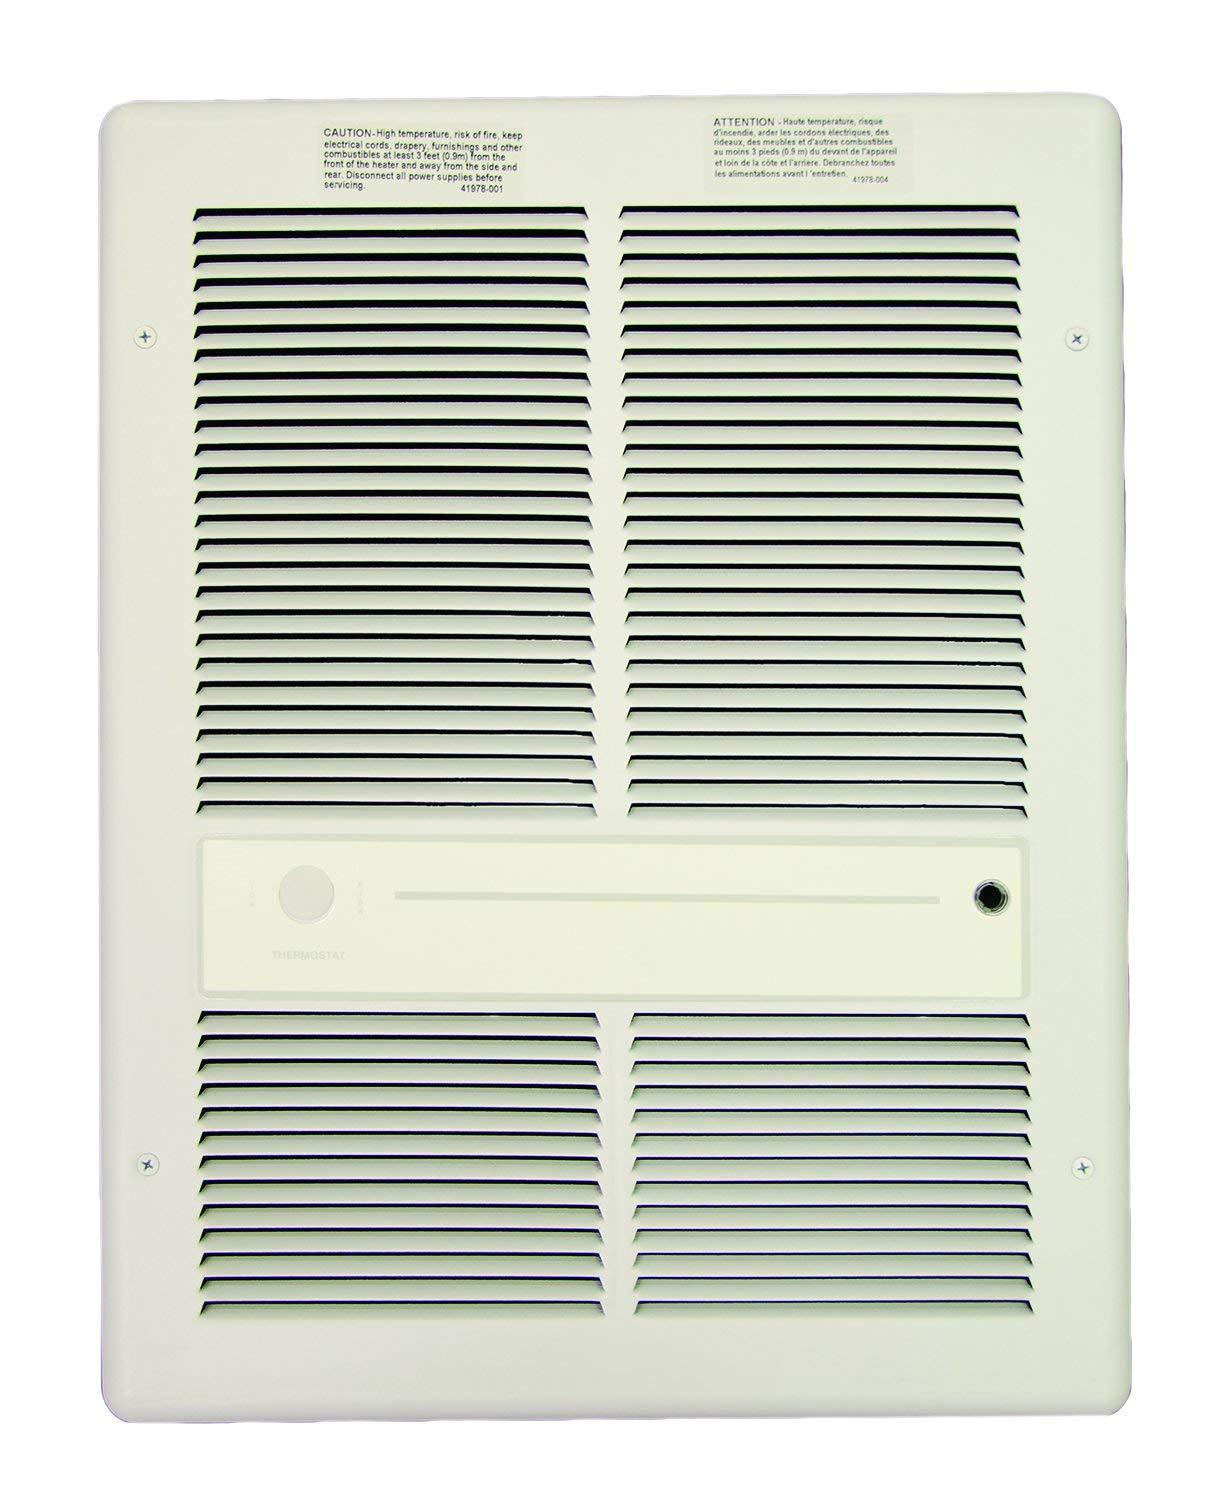 TPI 4000/3000W 240/208V 3310 Series Fan Forced Wall Heater (White) - Without Summer Fan Switch - 1 Pole Thermostat - HF3316TRPW